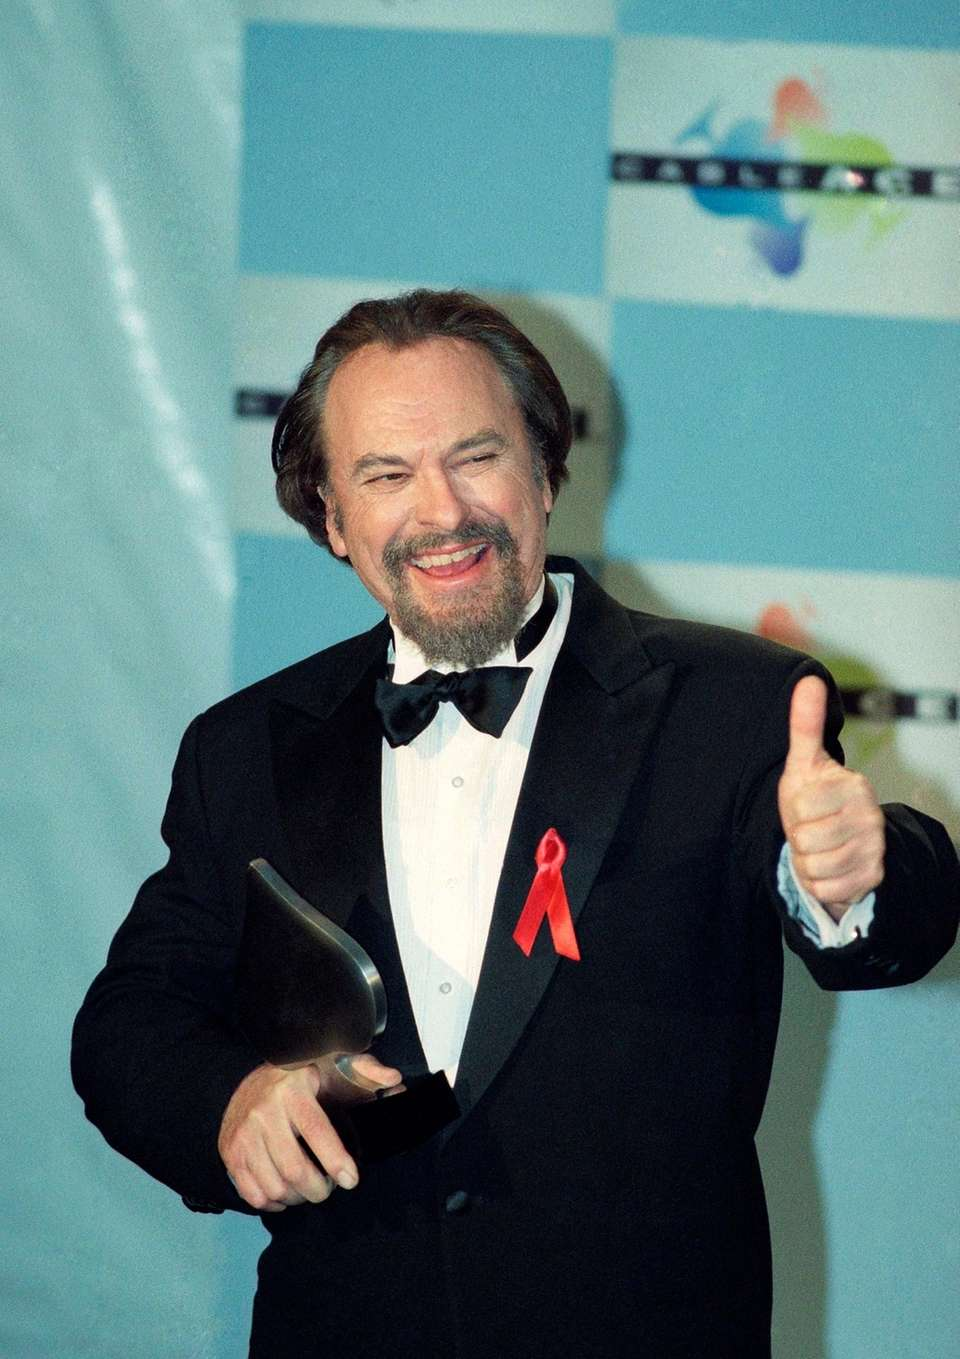 Rip Torn, the veteran actor of stage and